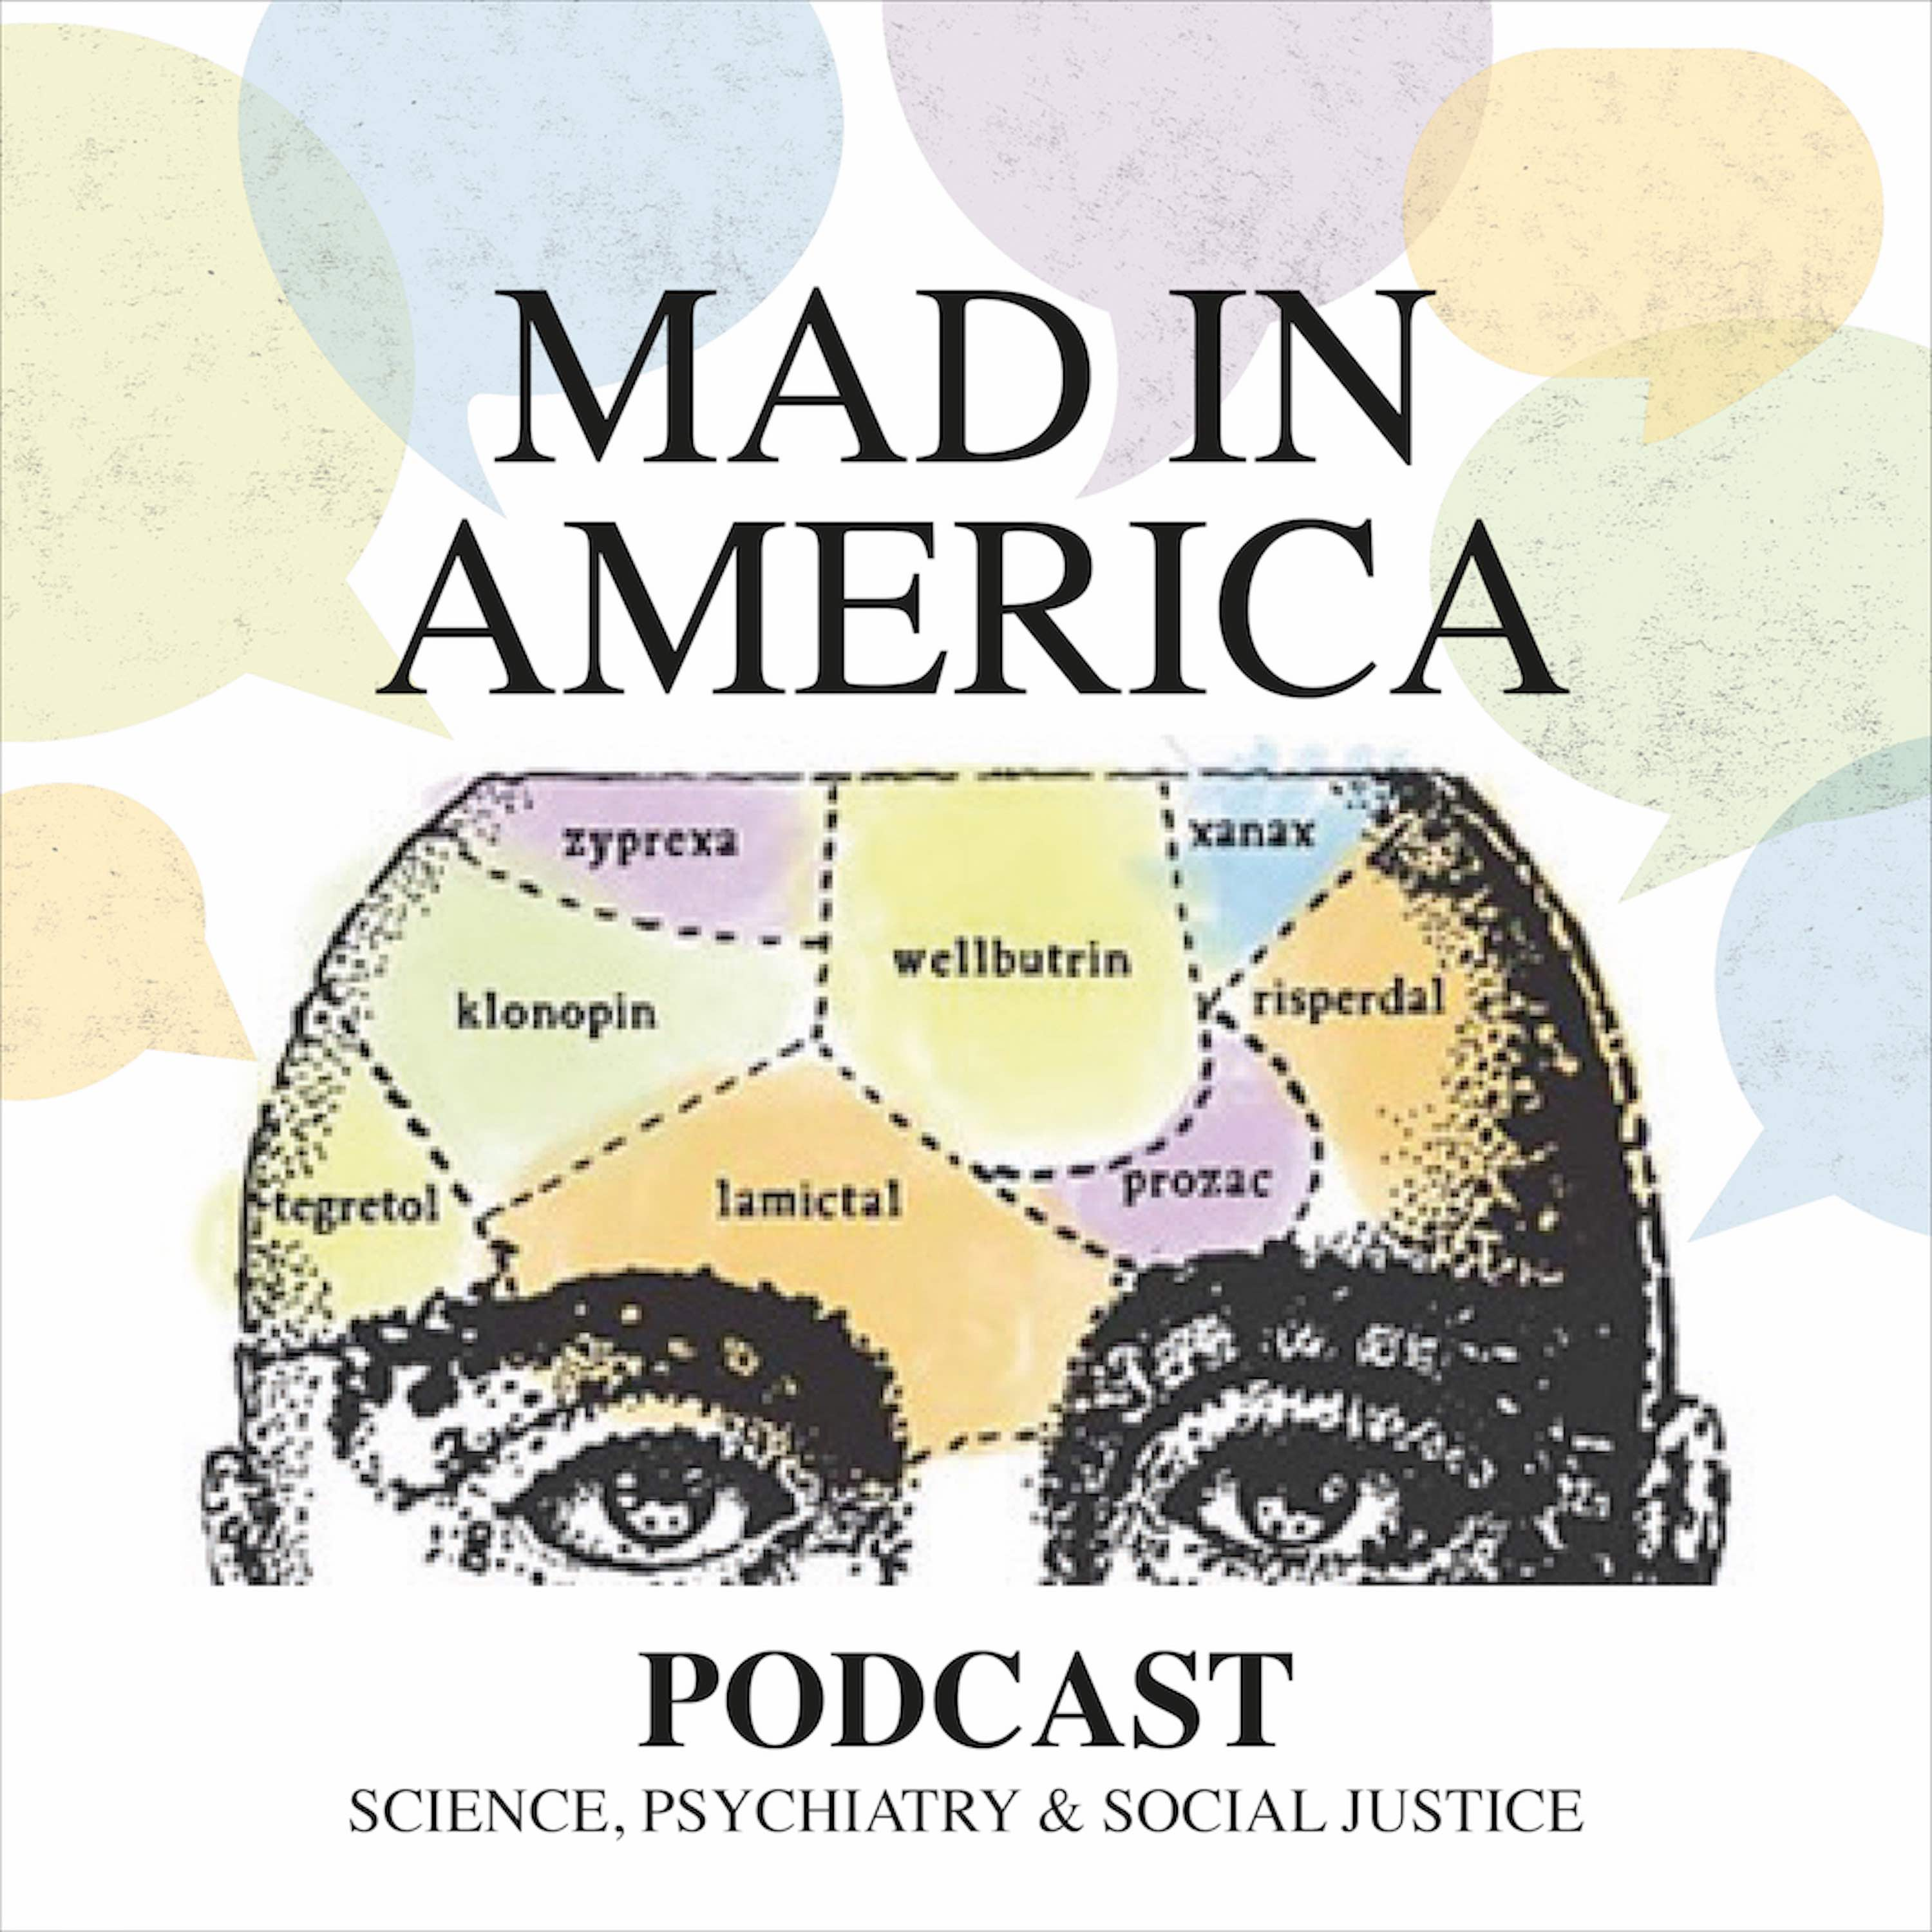 Mad in America: Rethinking Mental Health - John Read - The UK Royal College of Psychiatrists and Antidepressant Withdrawal